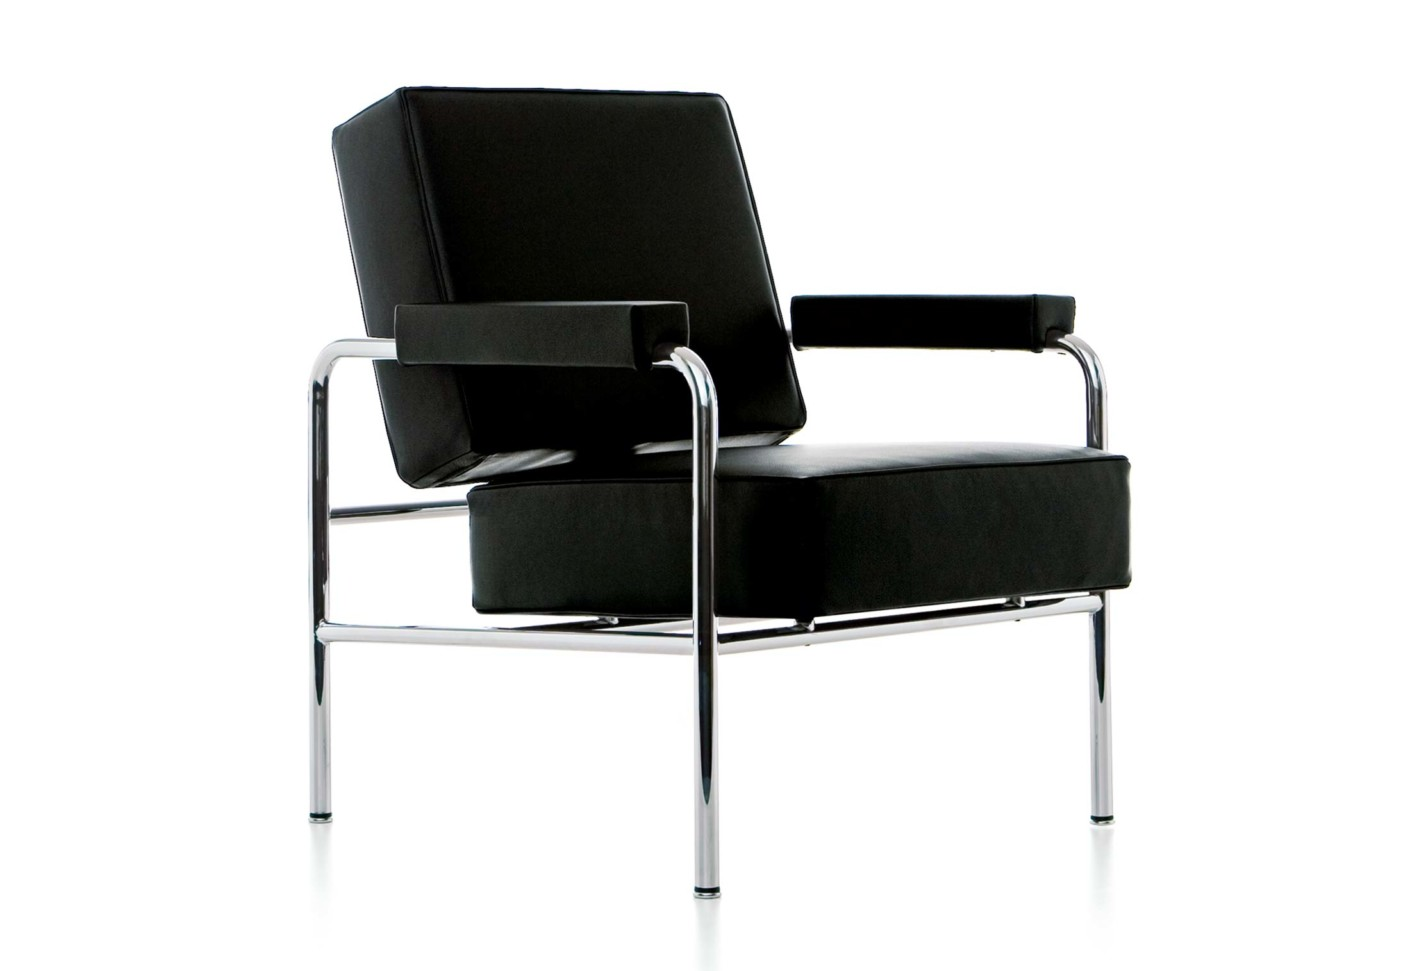 Lc 2 Sessel Lc13 Fauteuil Wagon Fumoir Von Cassina | Stylepark